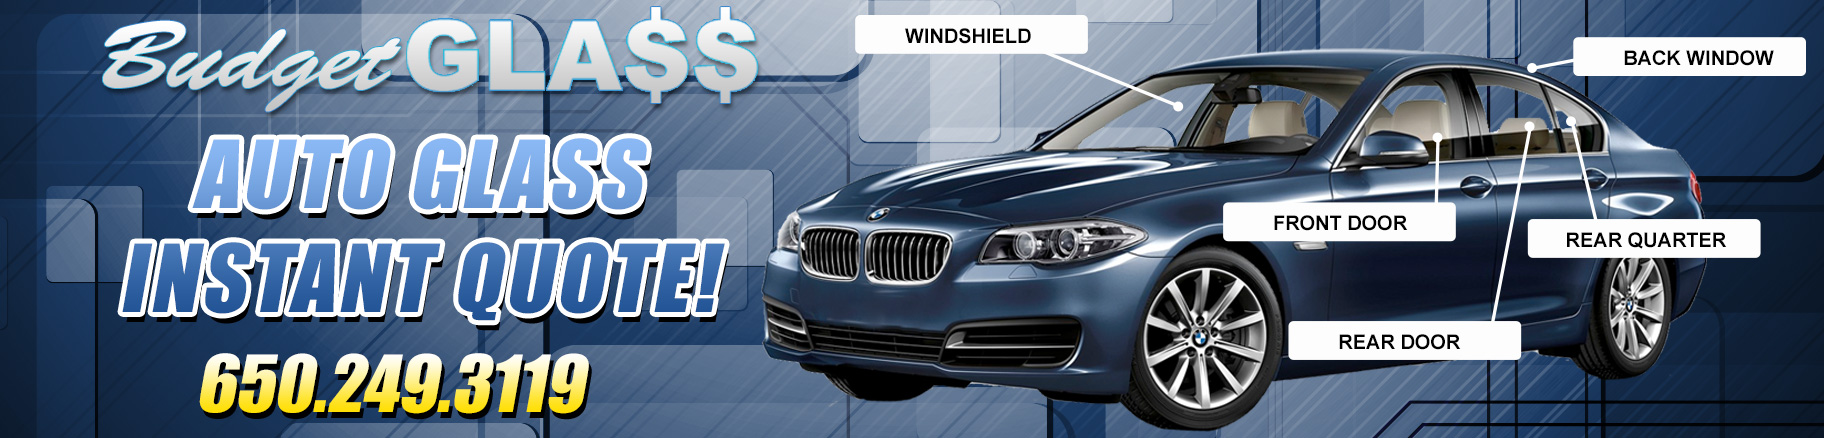 Auto Glass Quote Auto Glass Repair San Carlos  California Windshield Replacement